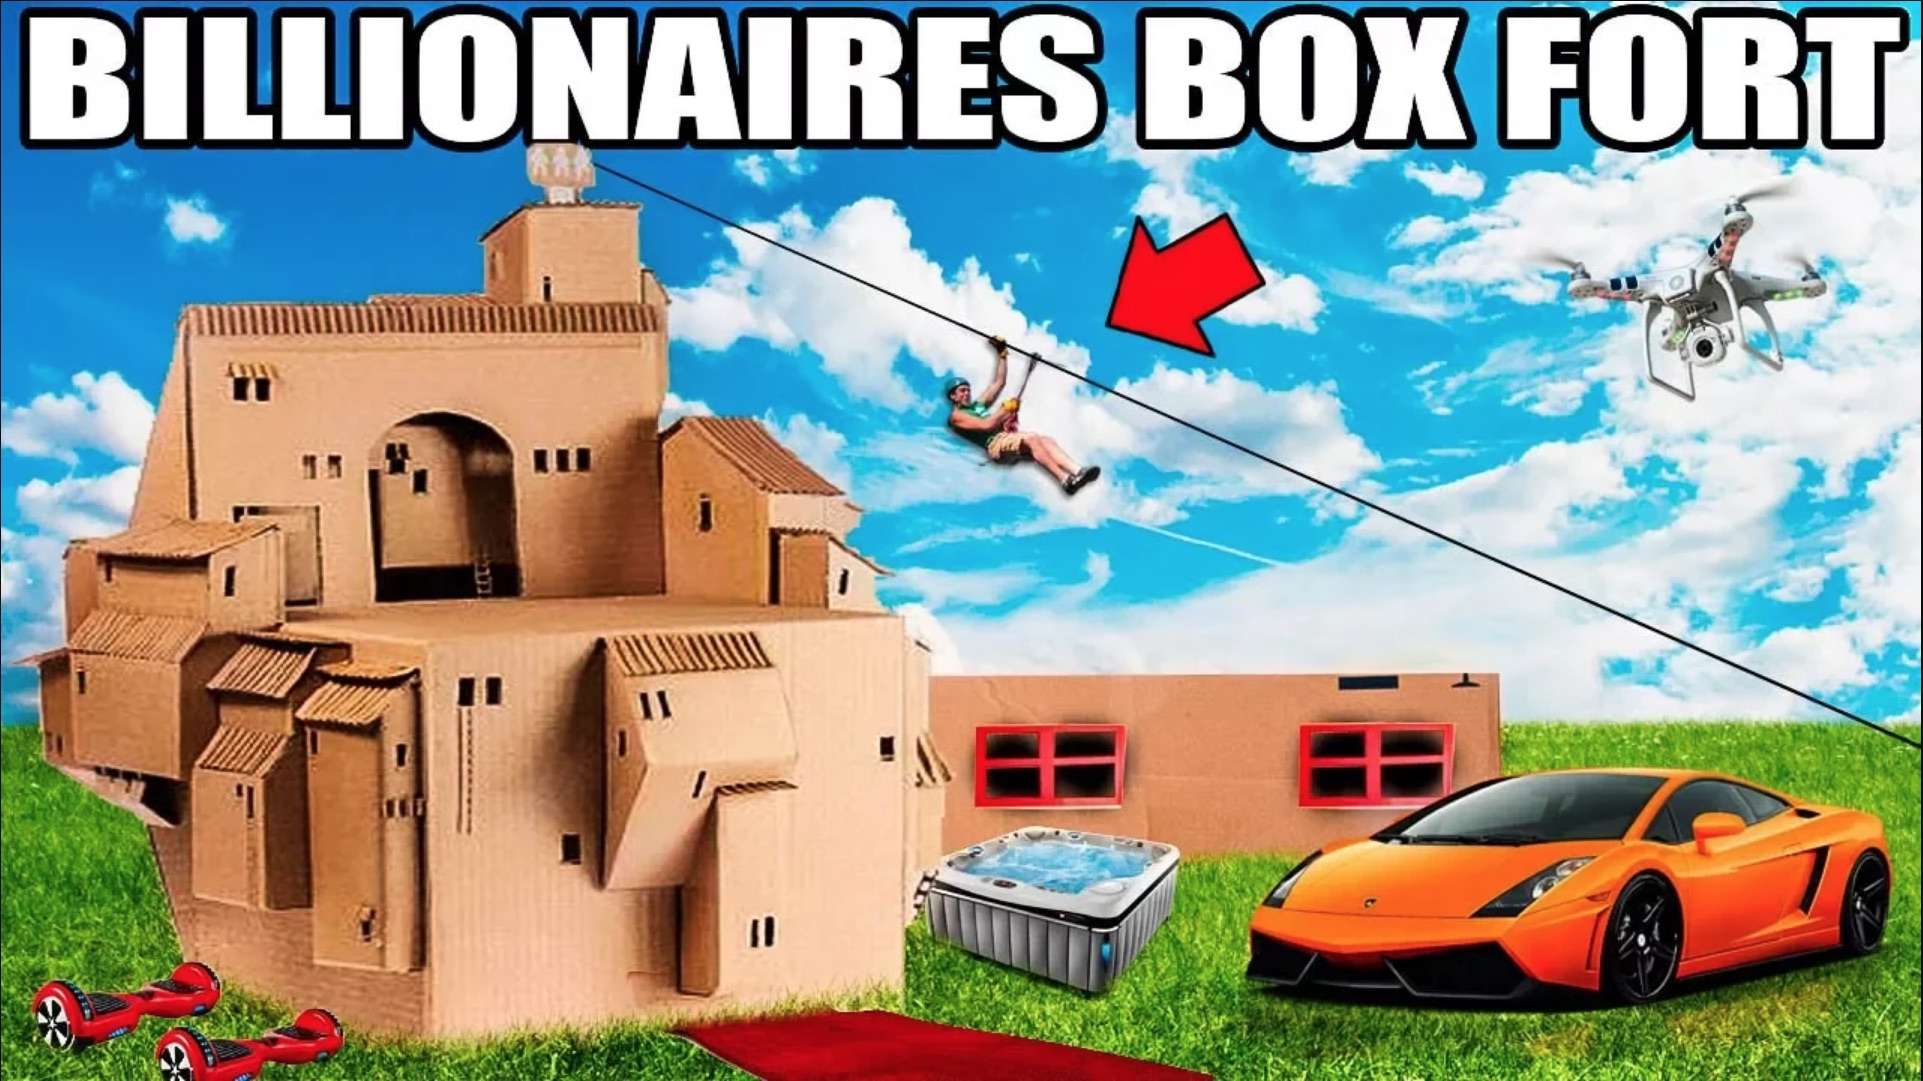 billionaires box fort